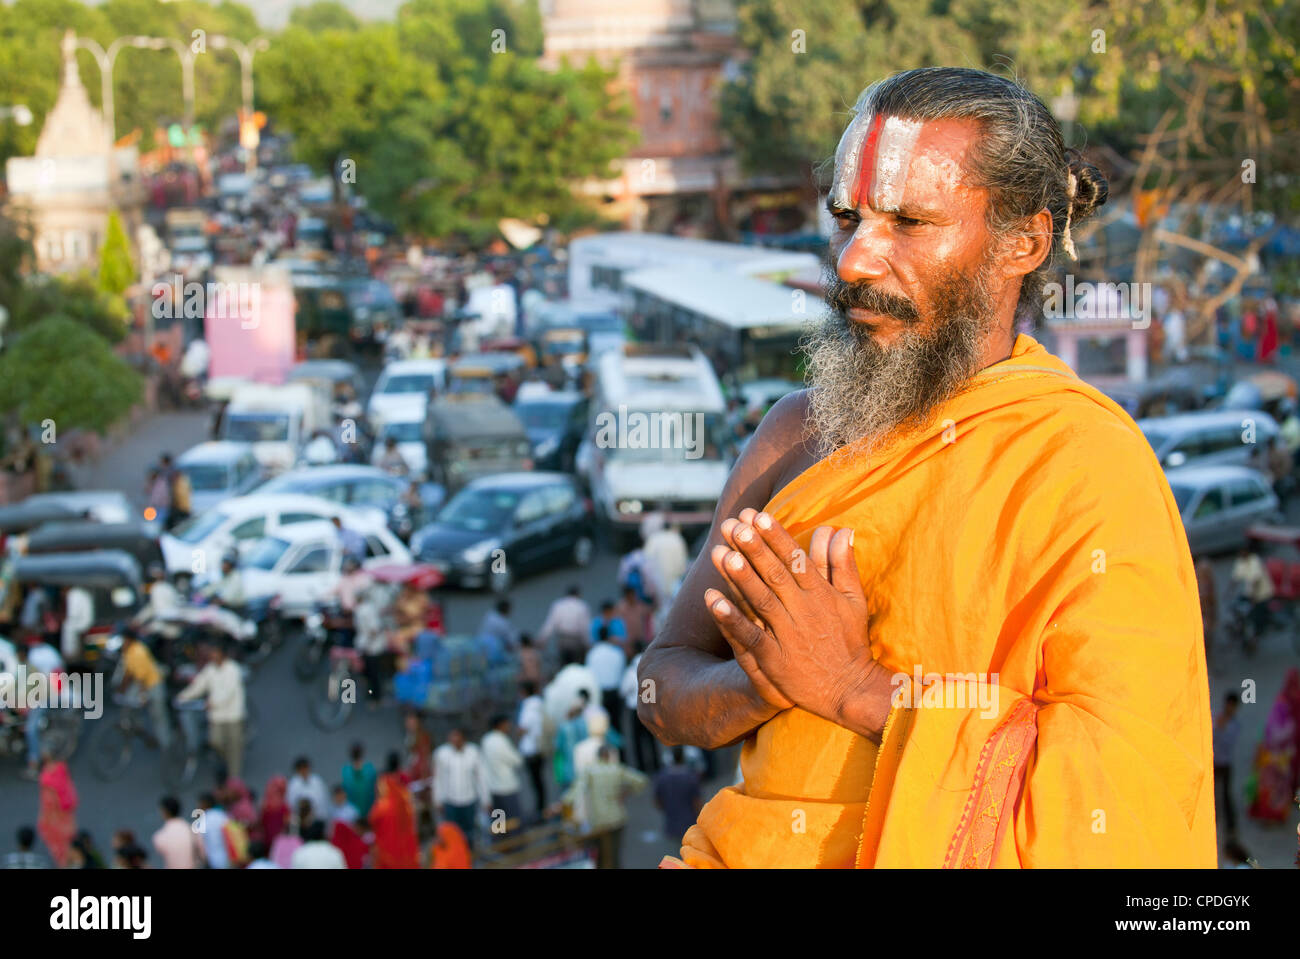 Holy Sadhu meditating high above traffic congestion and street life in the city of Jaipur, Rajasthan, India, Asia Stock Photo